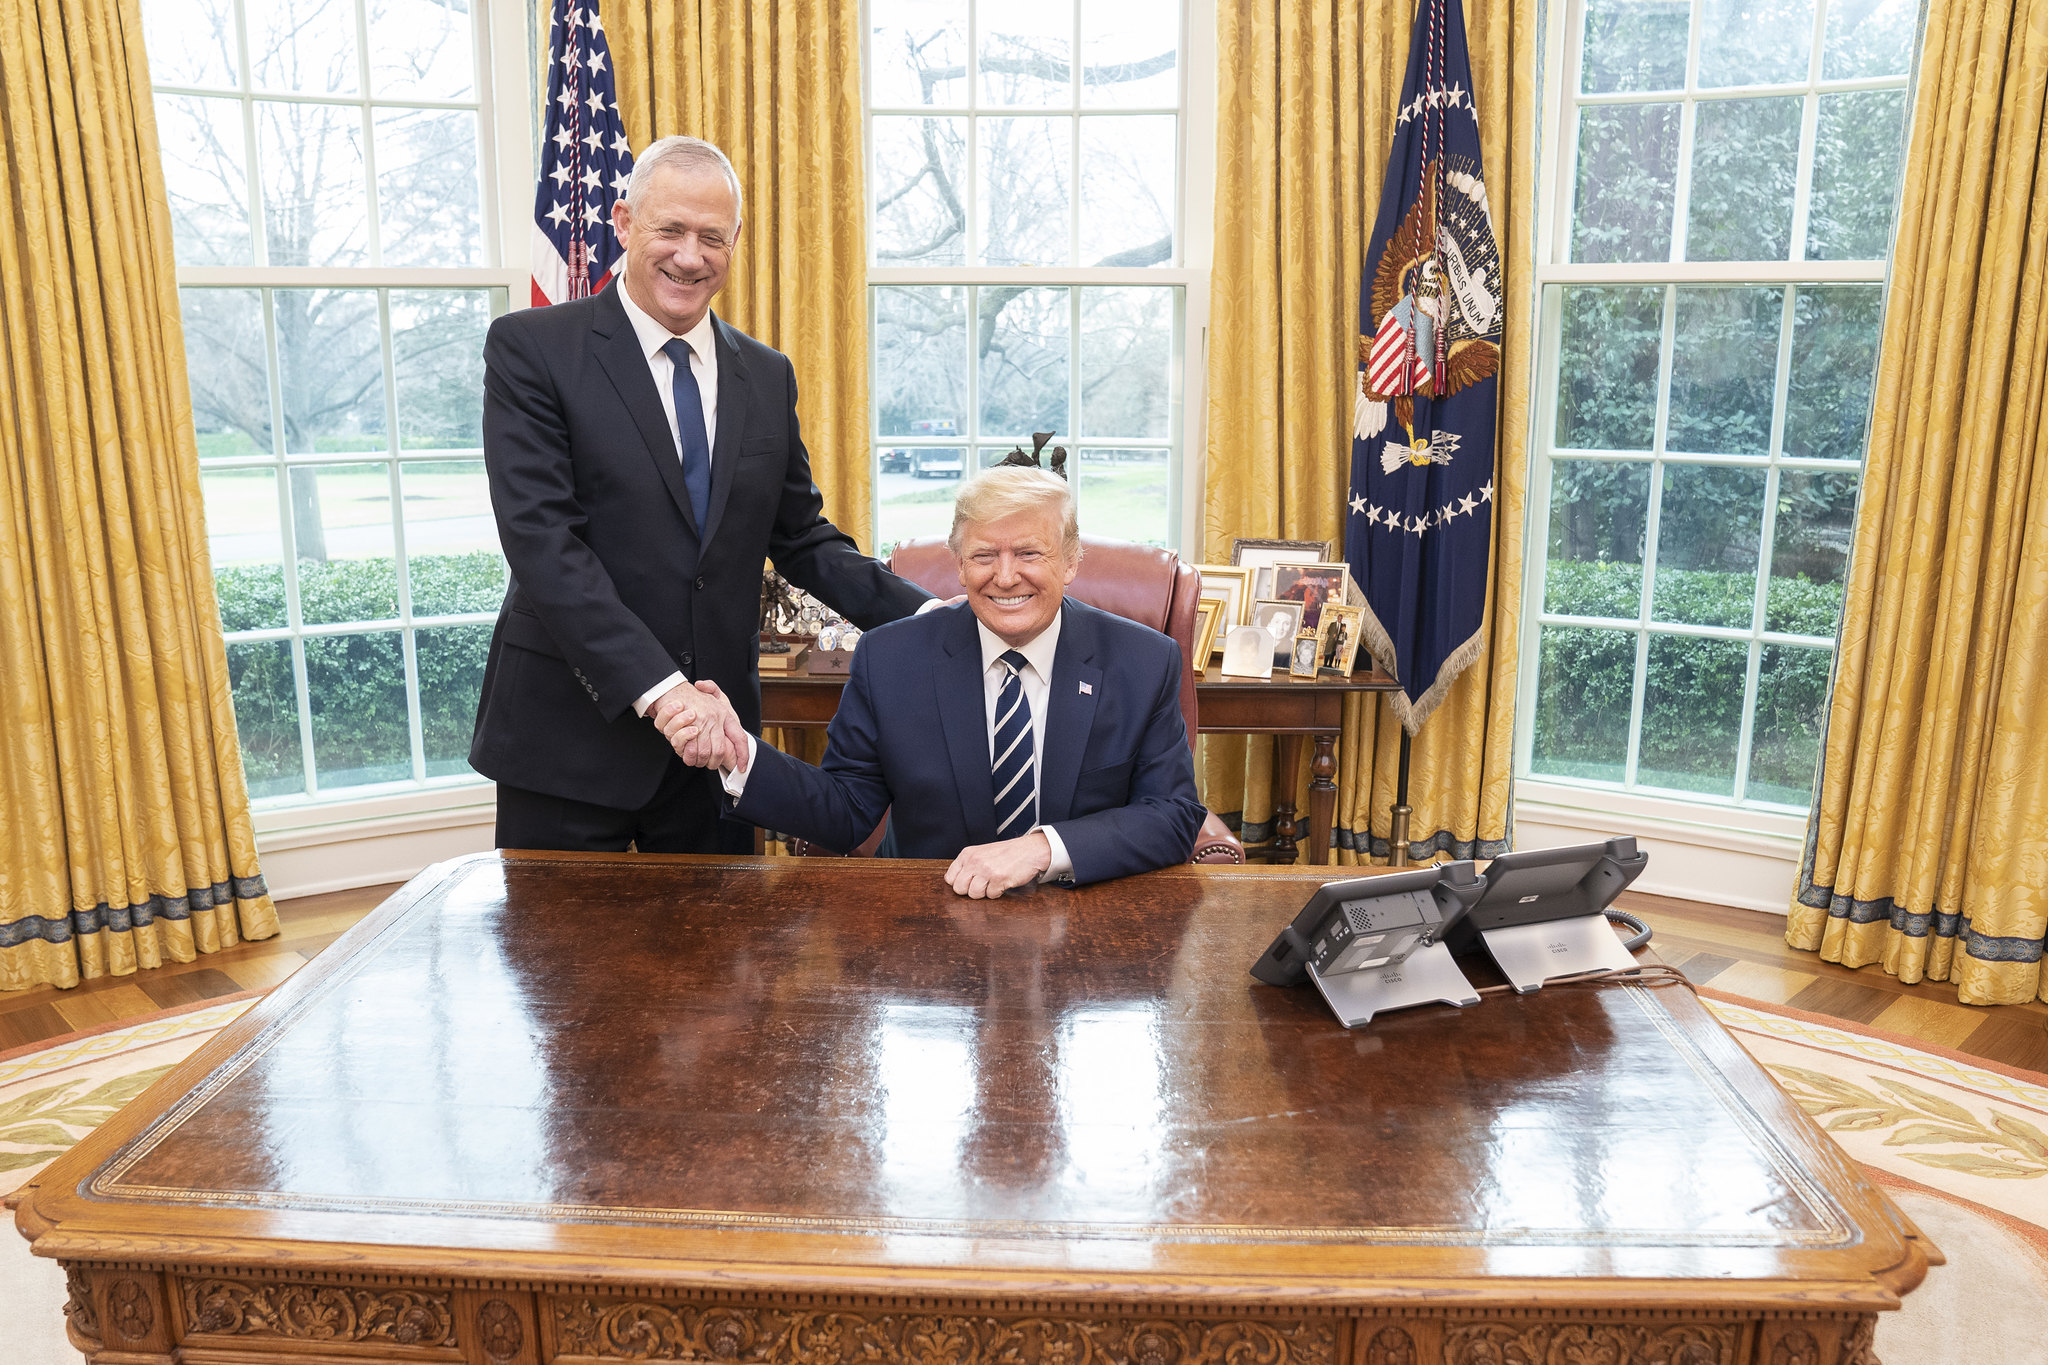 U.S. President Donald Trump meets with Benny Gantz of the Blue and White party in the Oval Office of the White House, on January 27, 2020. (Shealah Craighead/White House)